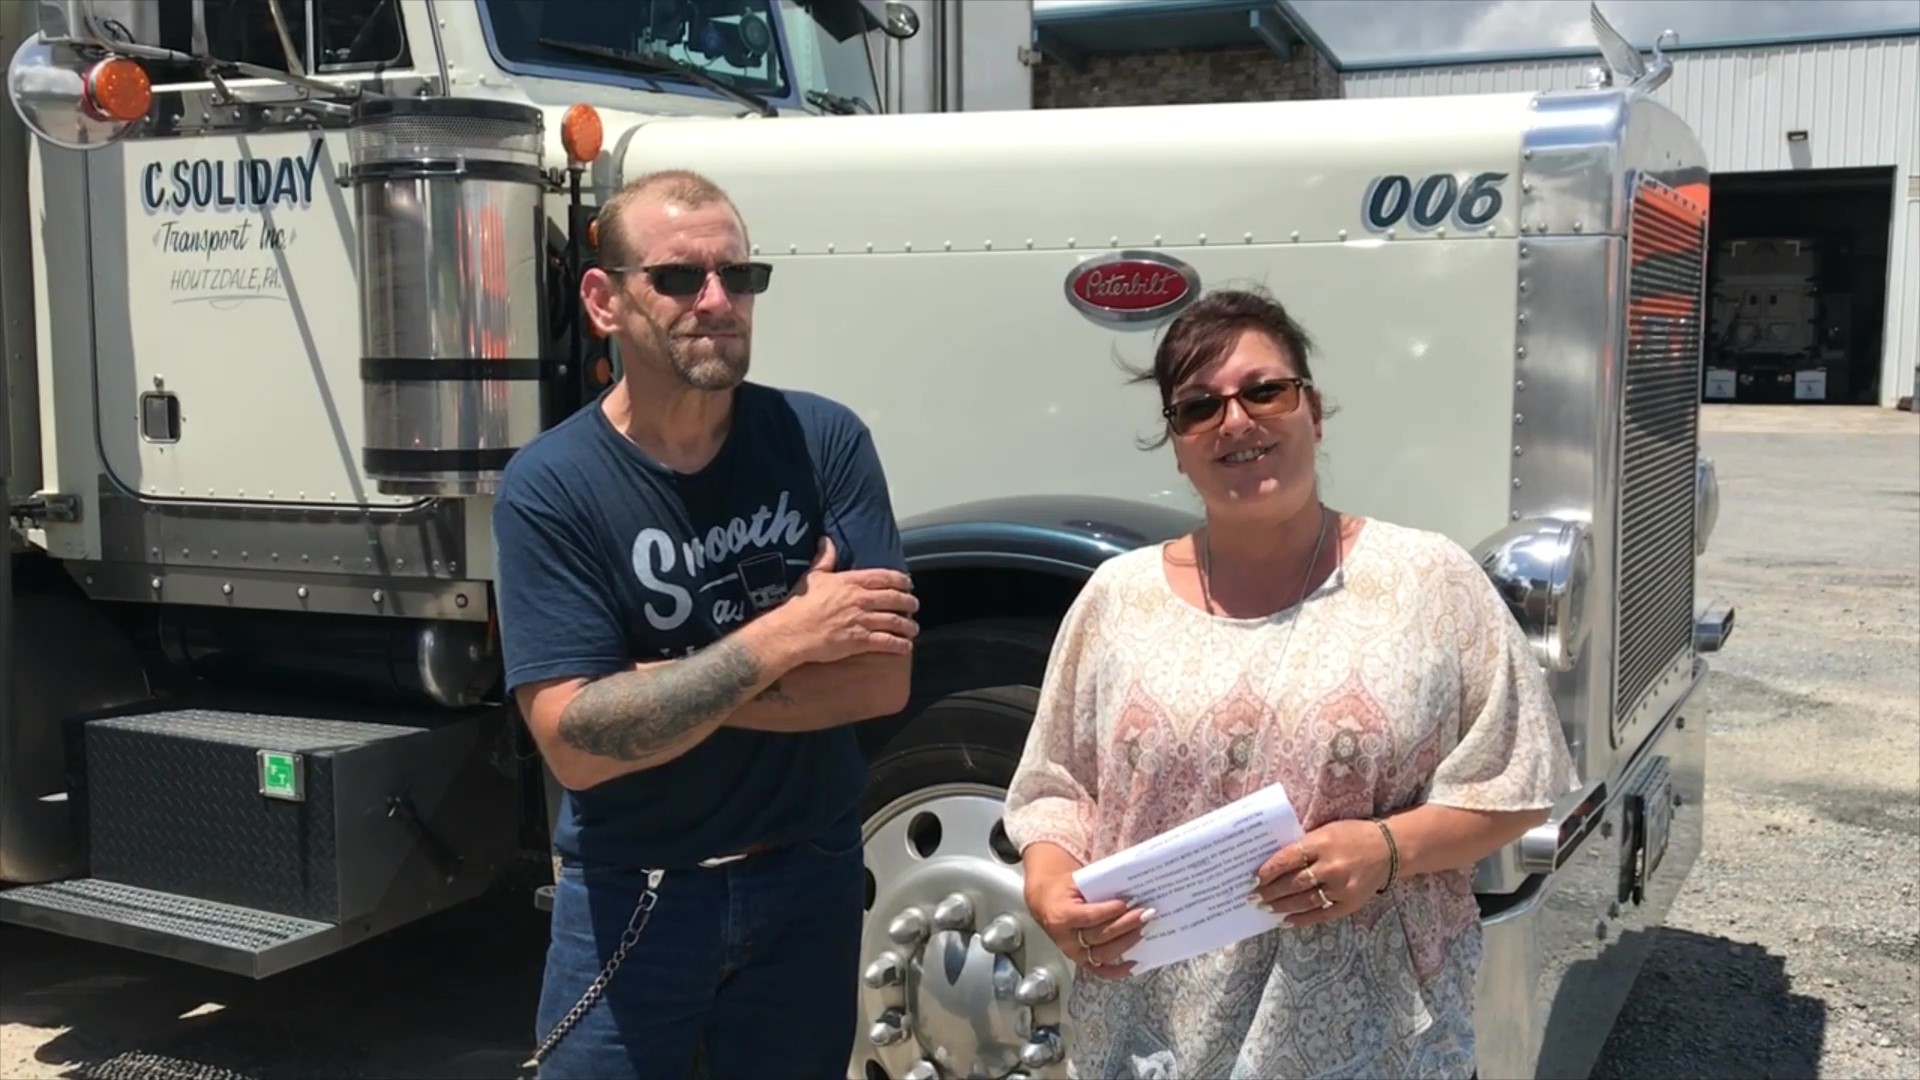 Katrina, our Social Media Coordinator interviewed Charles Soliday after he signed on two 2010 Vanguard trailers that were a part of our lease-purchase trailer program.